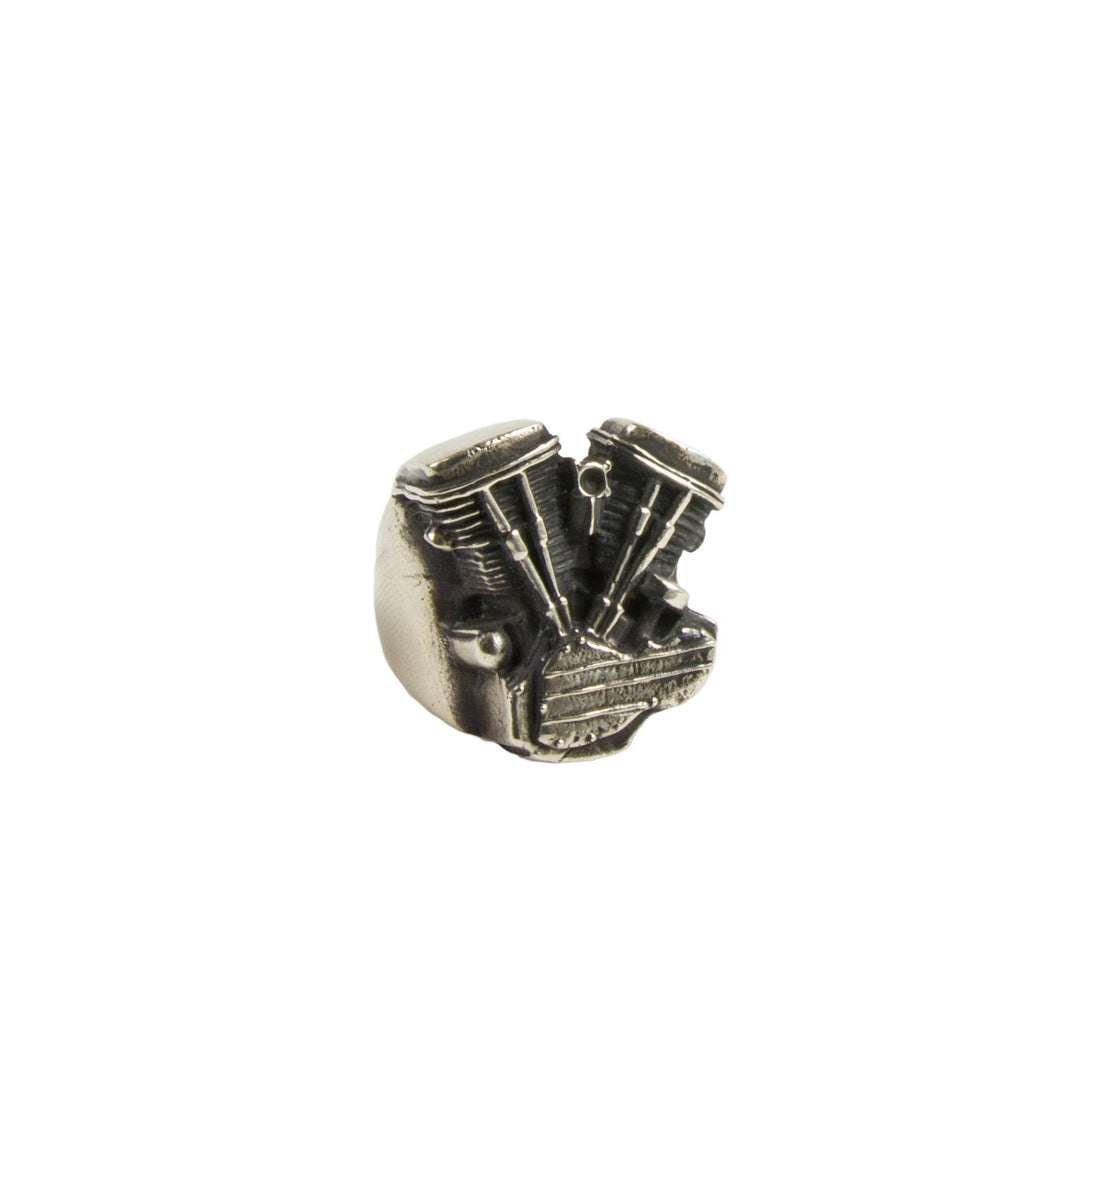 Repop Mfg - Panhead Ring - Jewelry - Iron and Resin